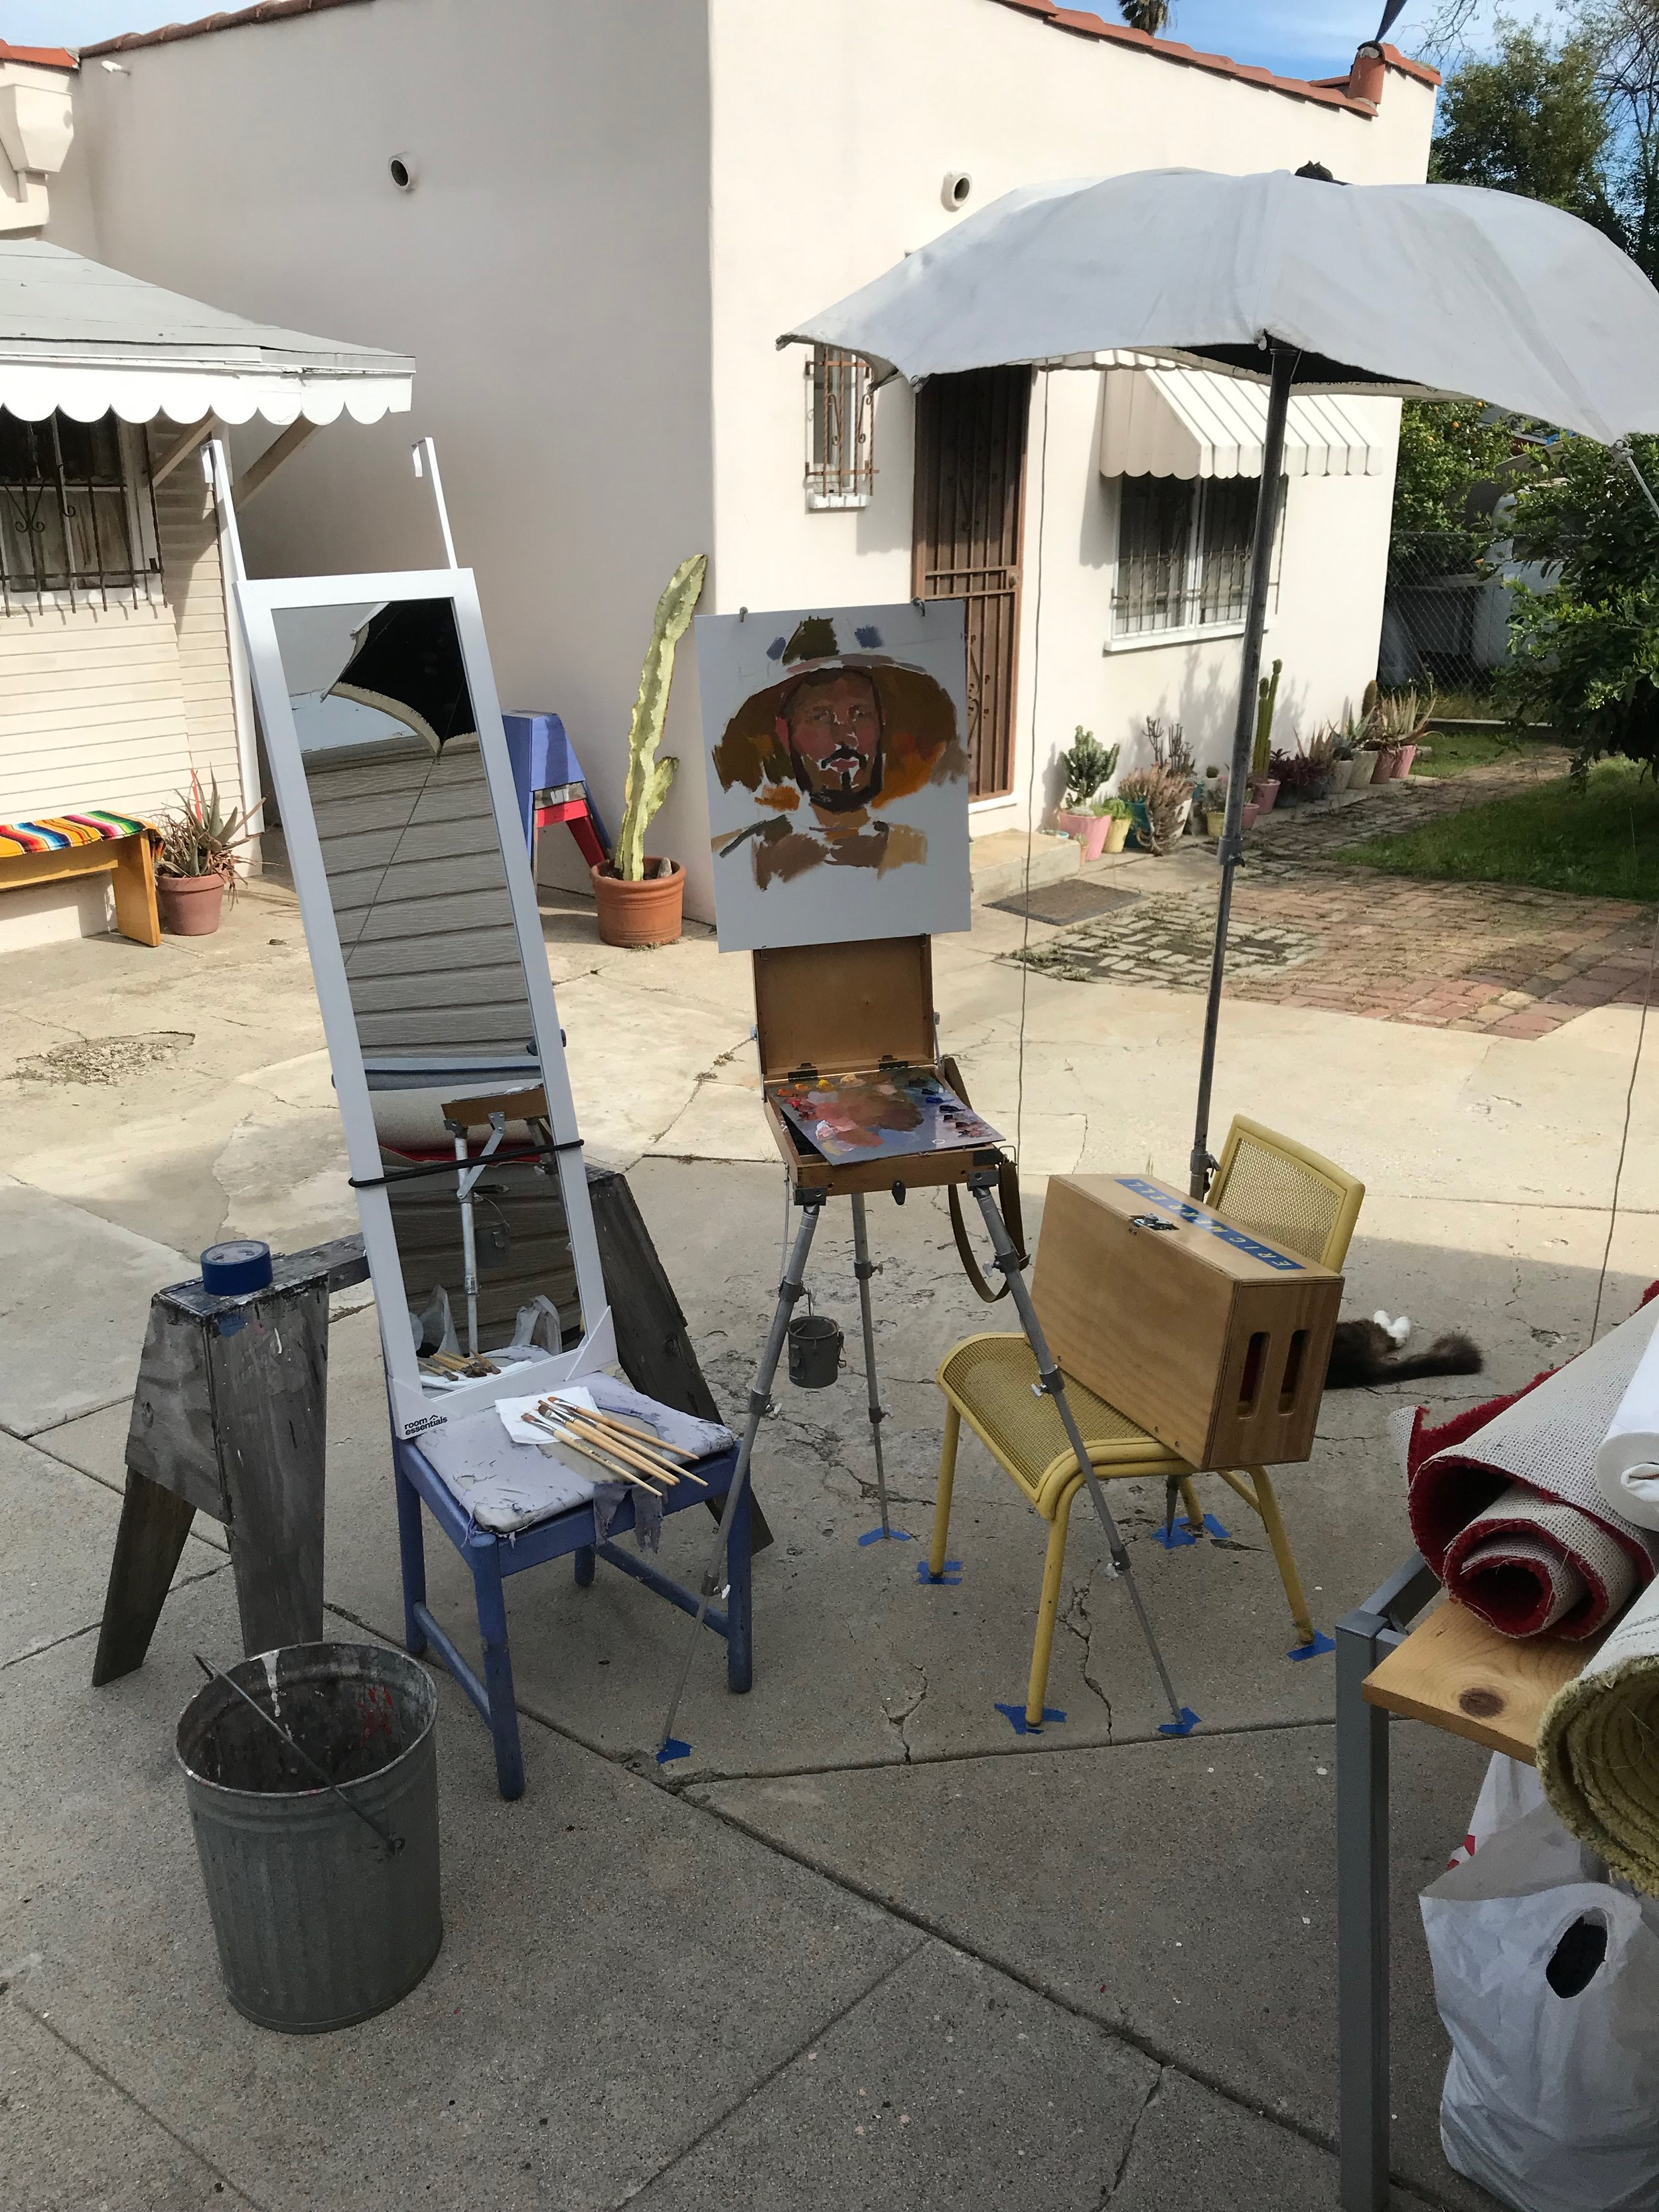 Overview of my setup for the outdoor portrait.